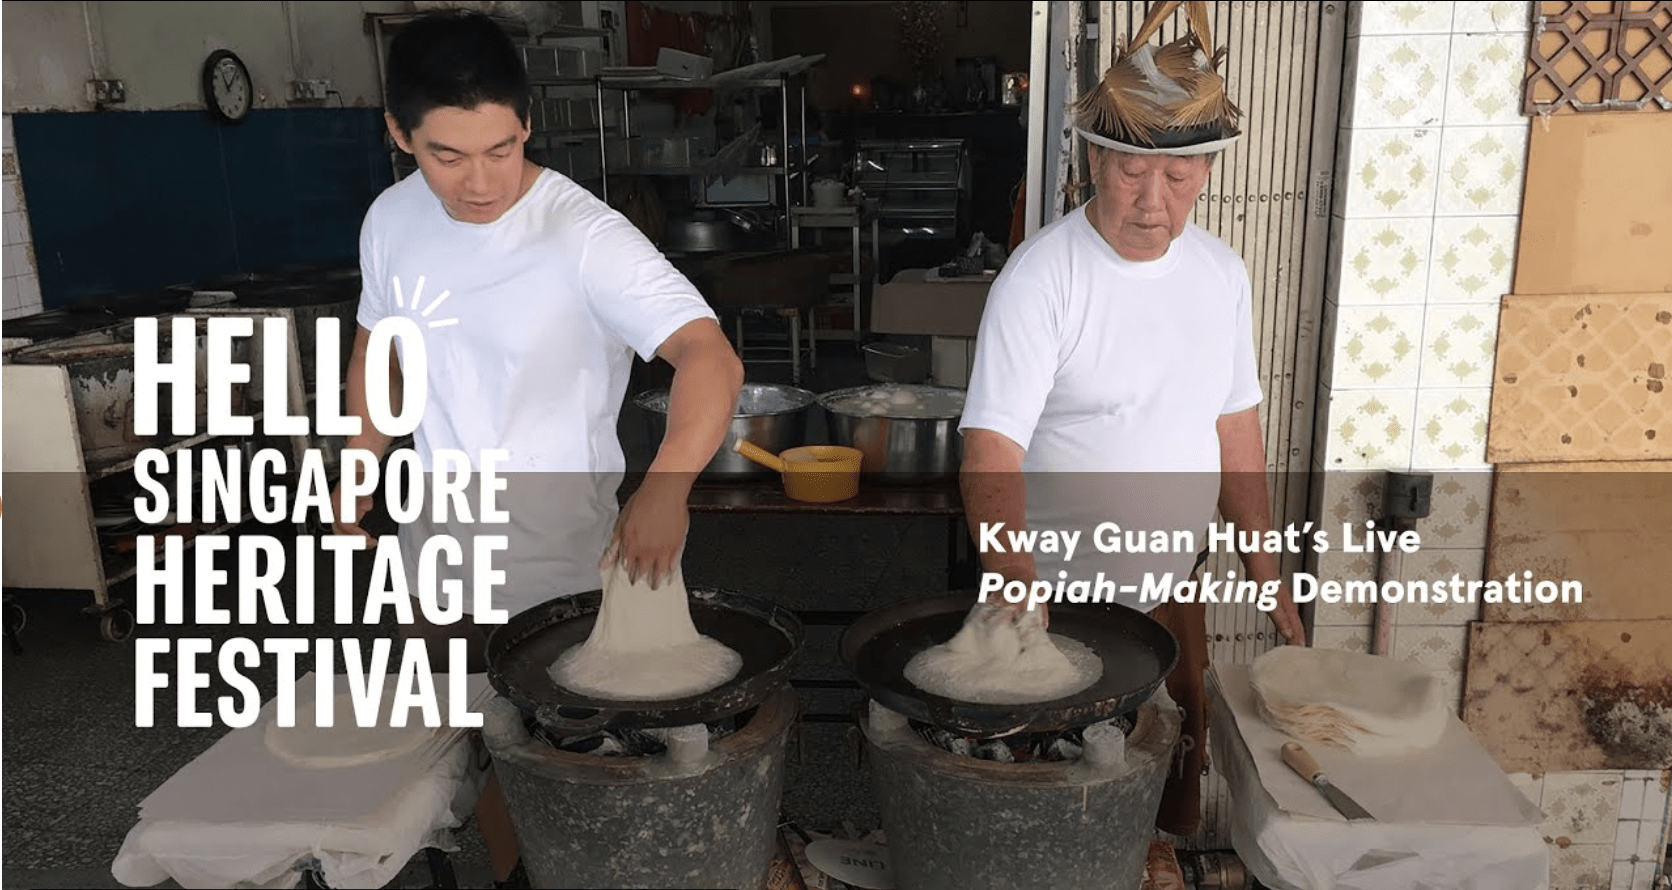 things to do July 2020 - Singapore Heritage Festival